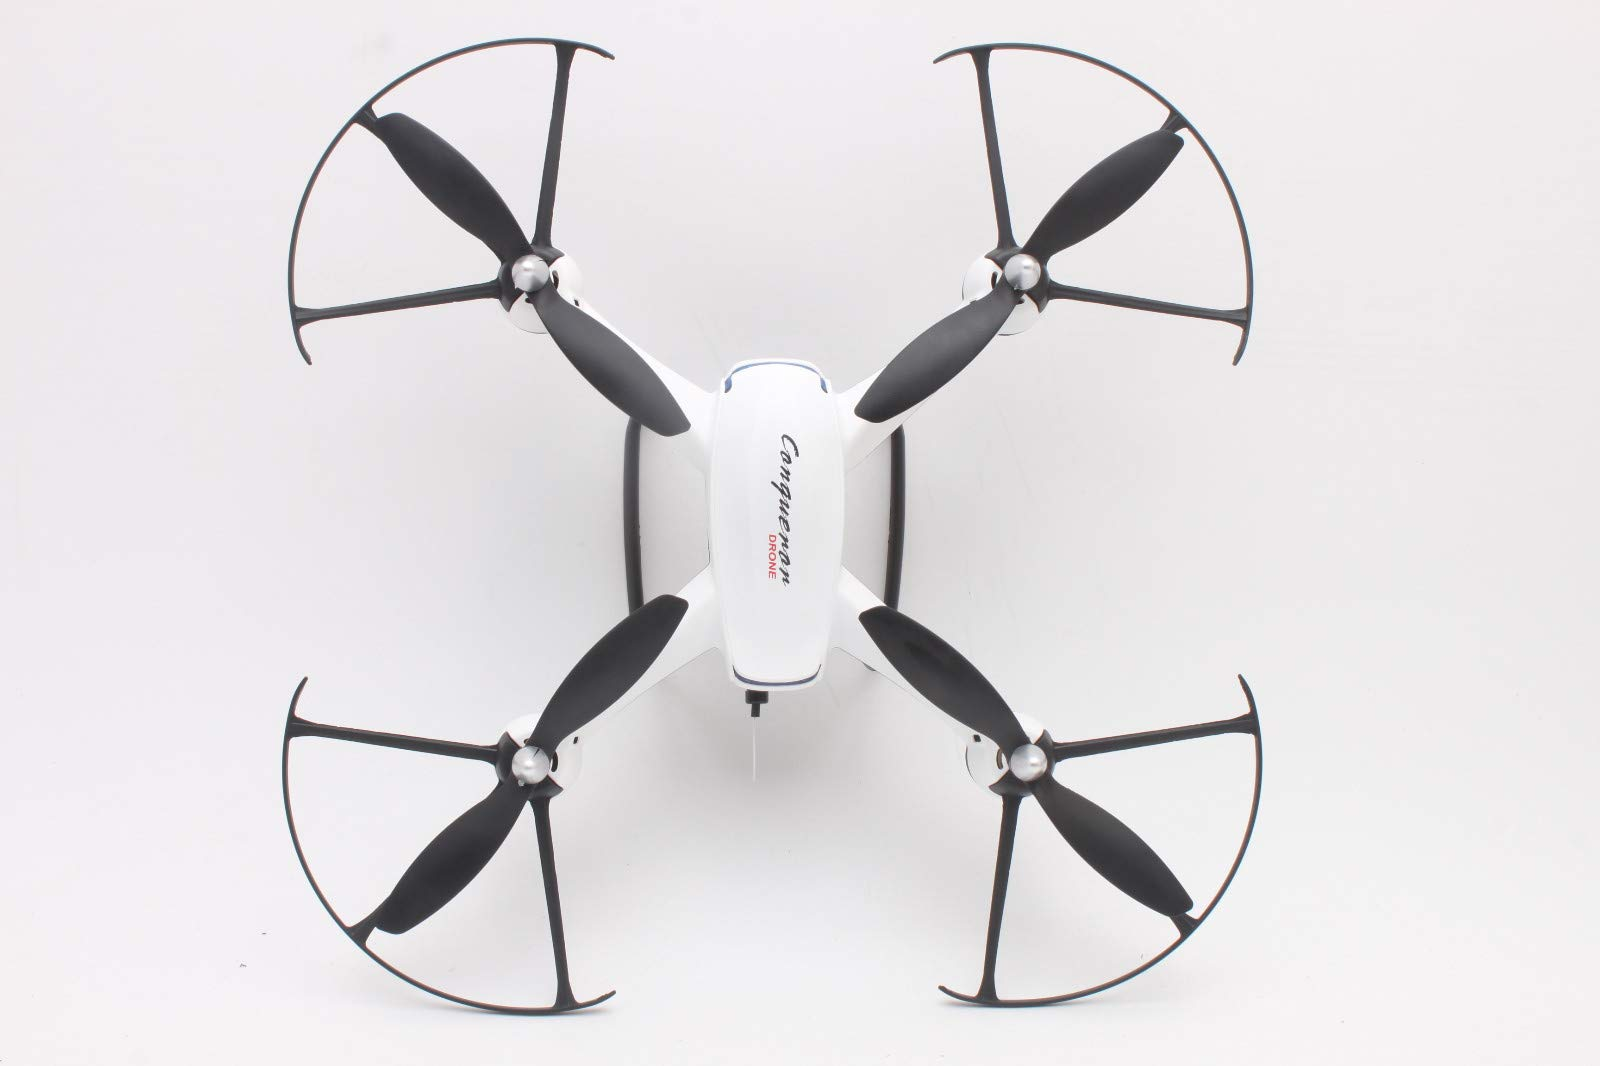 quietJUNjun toy RC Helicopter,DM009 2.4GHz 6-Axis Gyro 5MP Drone (White) by quietJUNjun toy (Image #3)